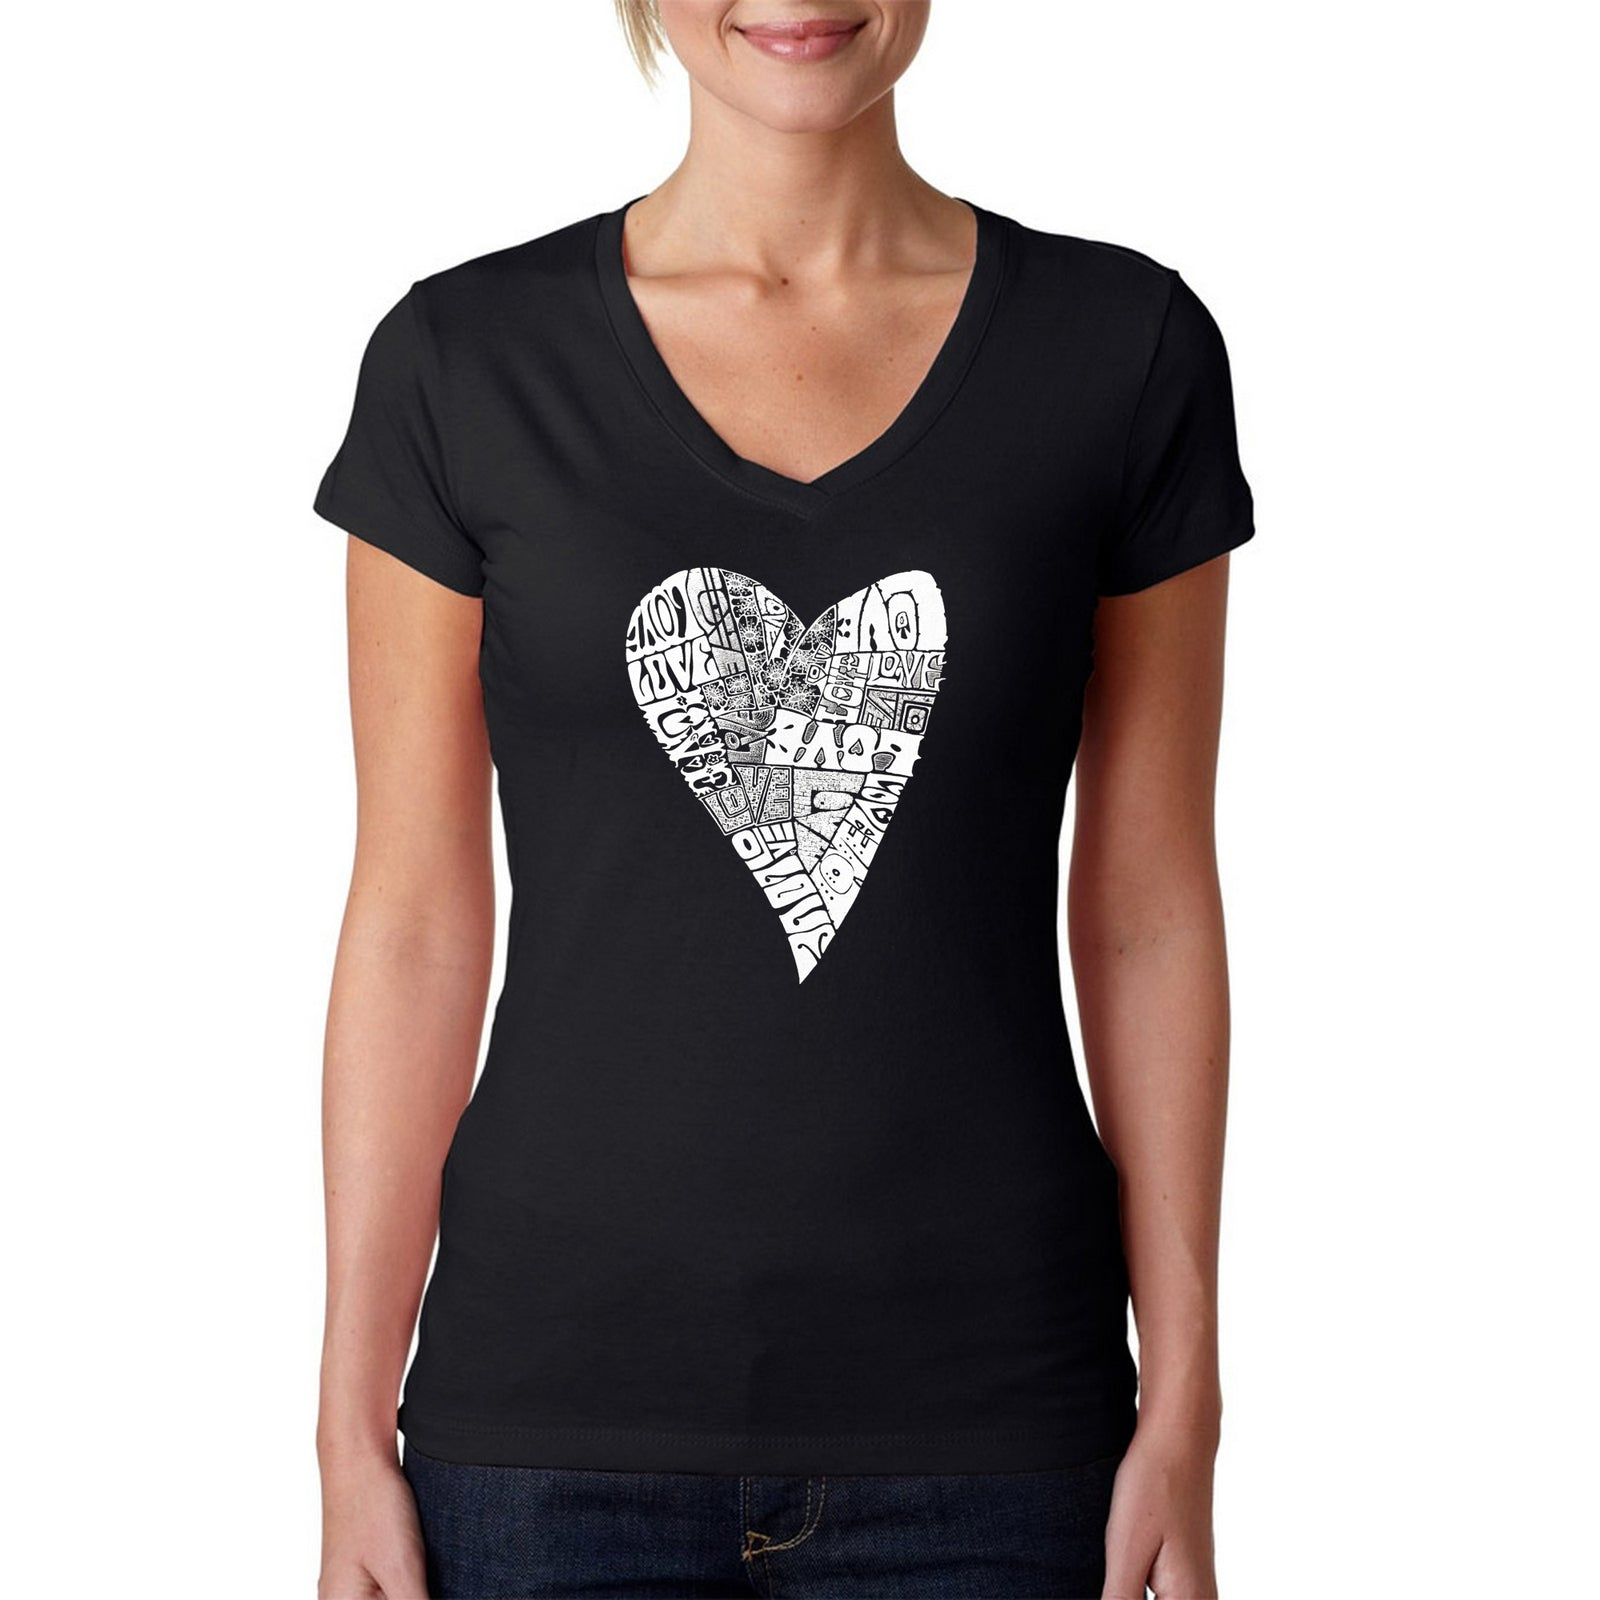 Women's V-Neck T-Shirt - Lots of Love